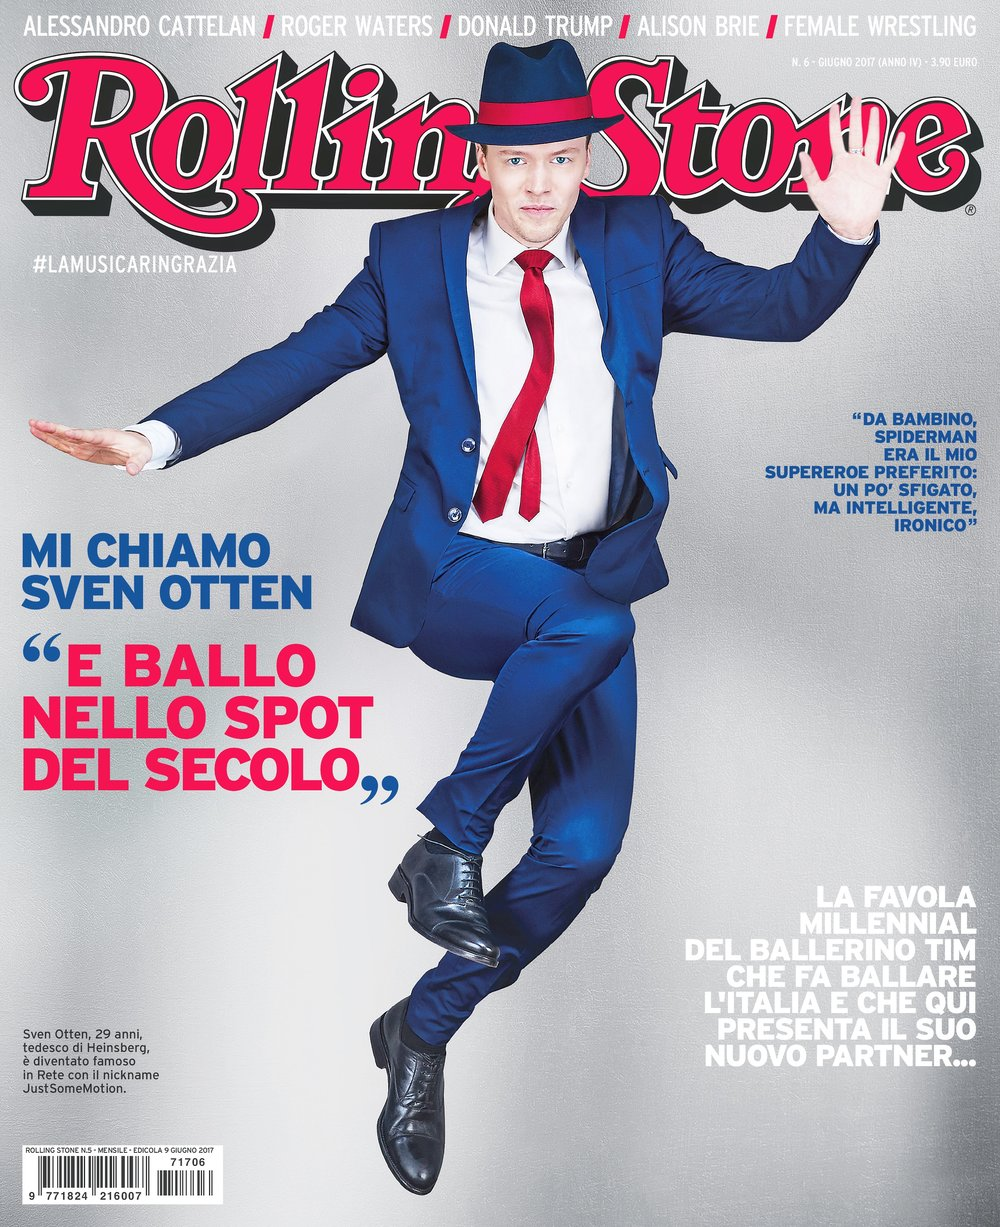 Cover Rolling Stone Magazine July 2017.JPG